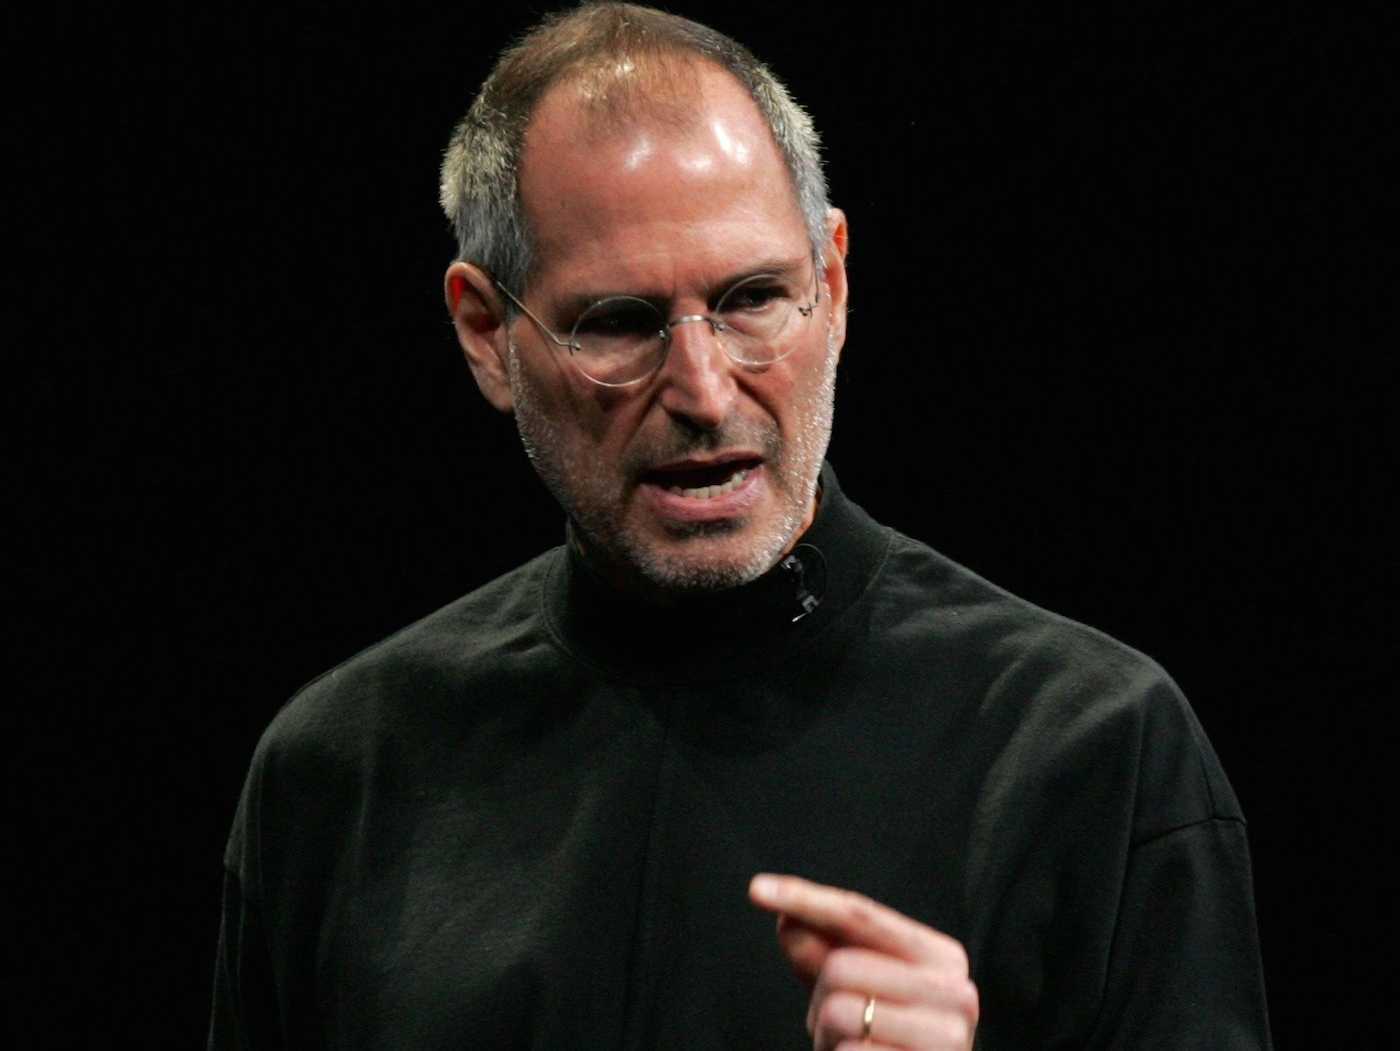 is steve jobs a leader or The latest steve jobs film does not shy away from showing the darker sides of his  character and the cult of leadership that surrounded him.